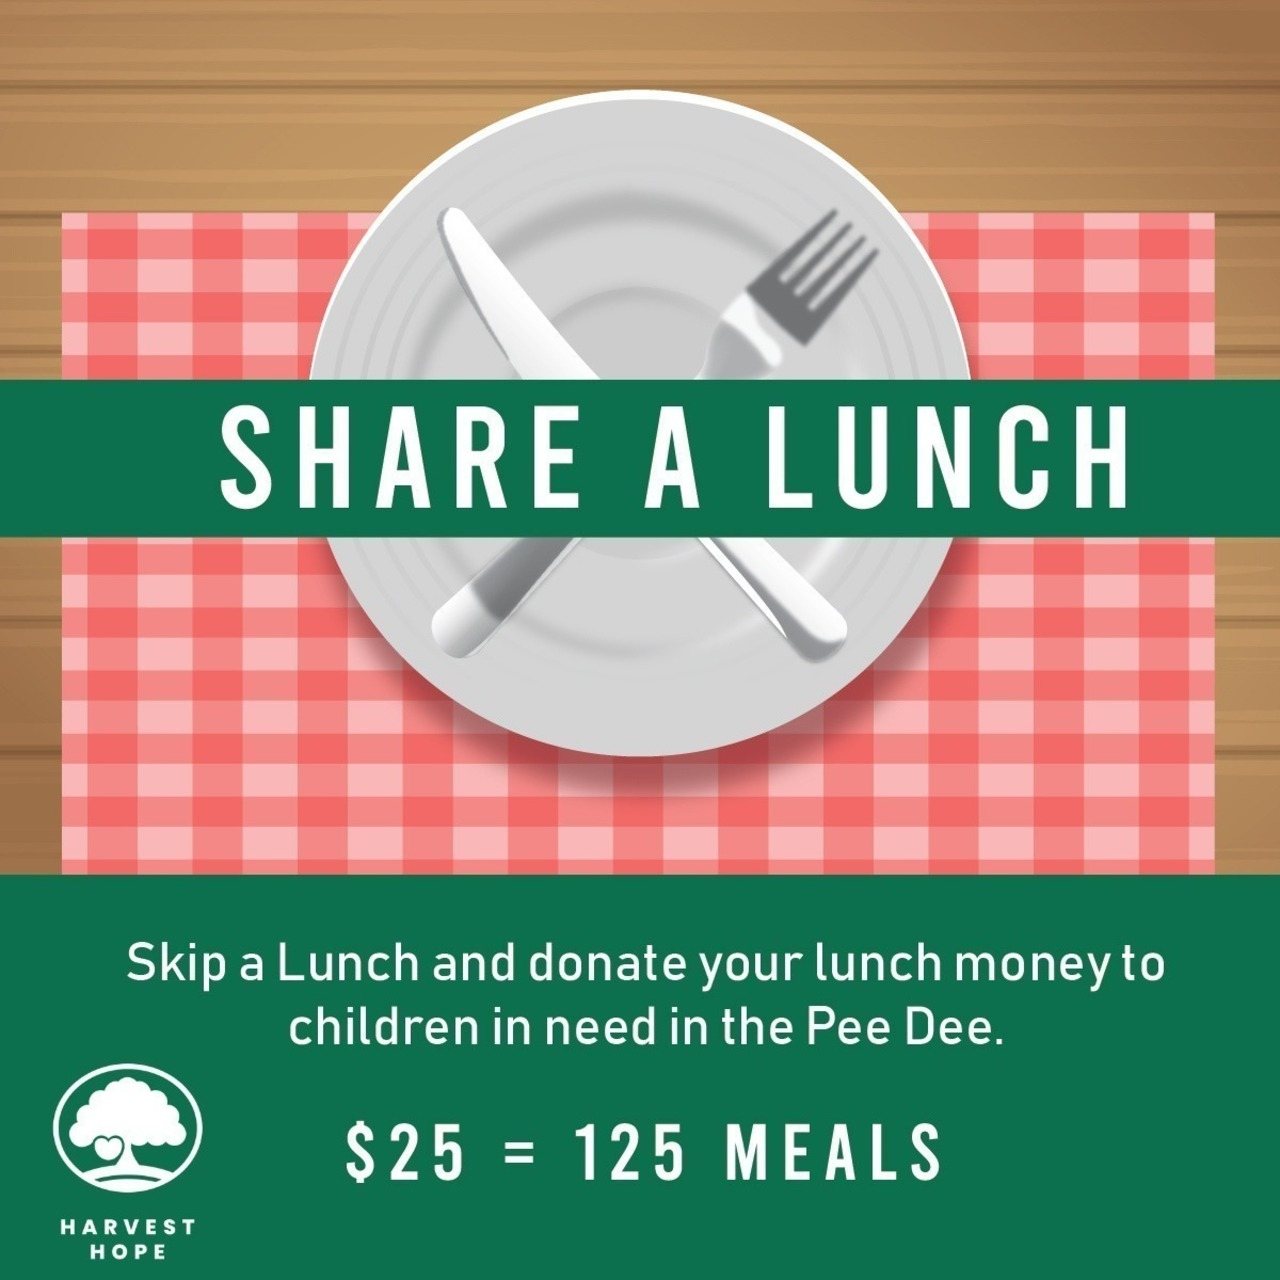 Jessica Morris' Share a Lunch Fundraiser for Harvest Hope